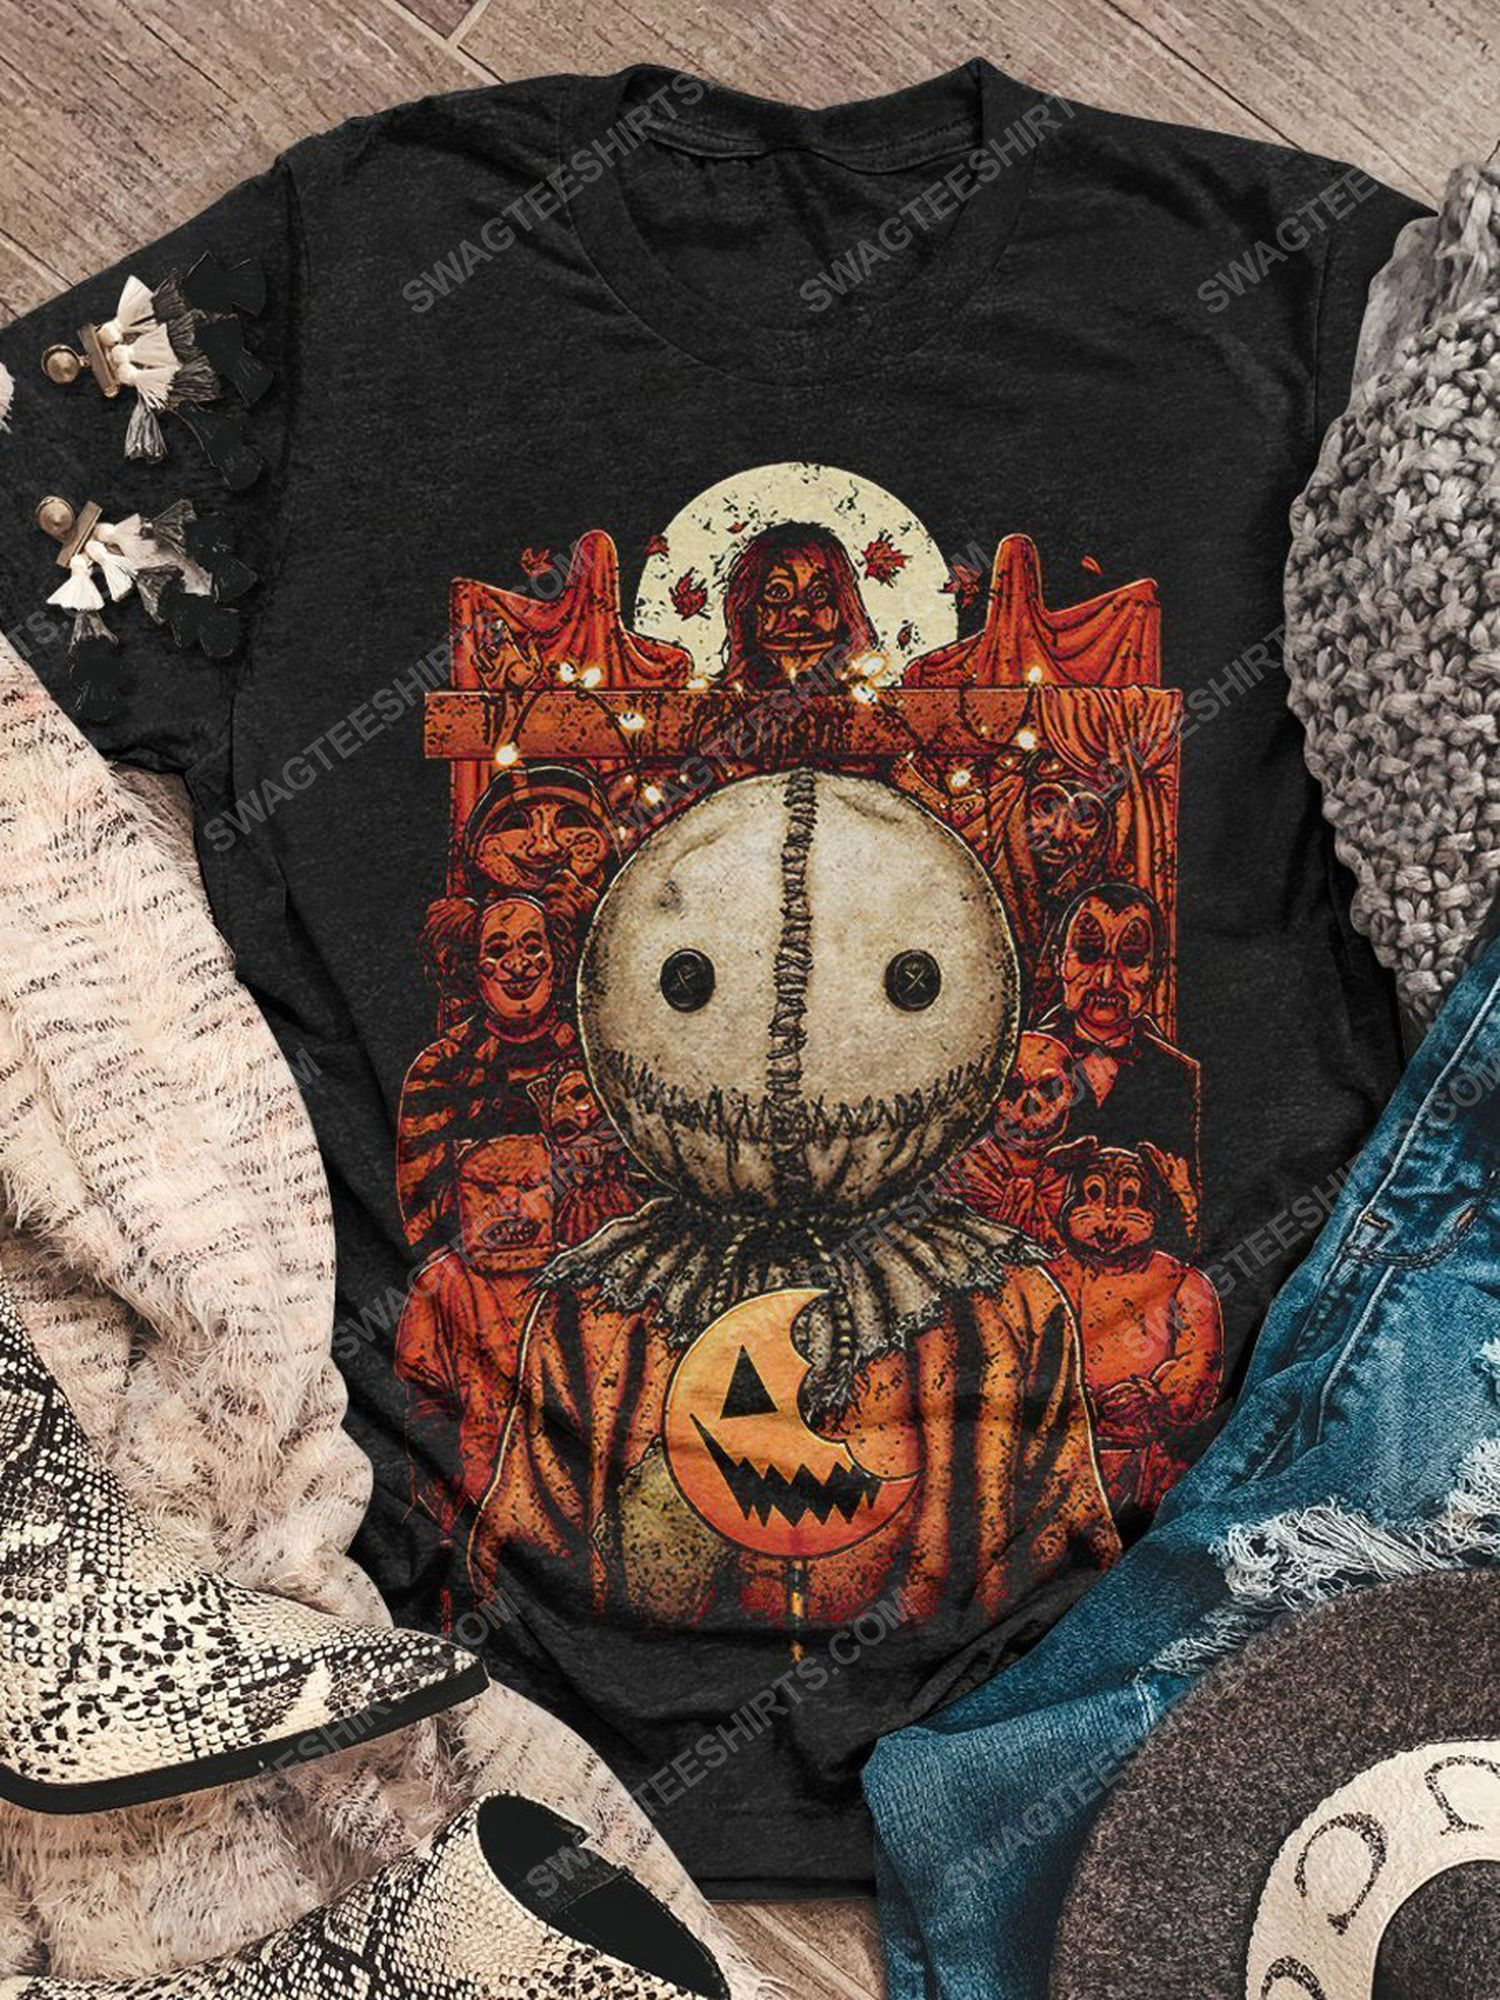 Halloween night and trick or treat scary movie shirt 1 - Copy (2)